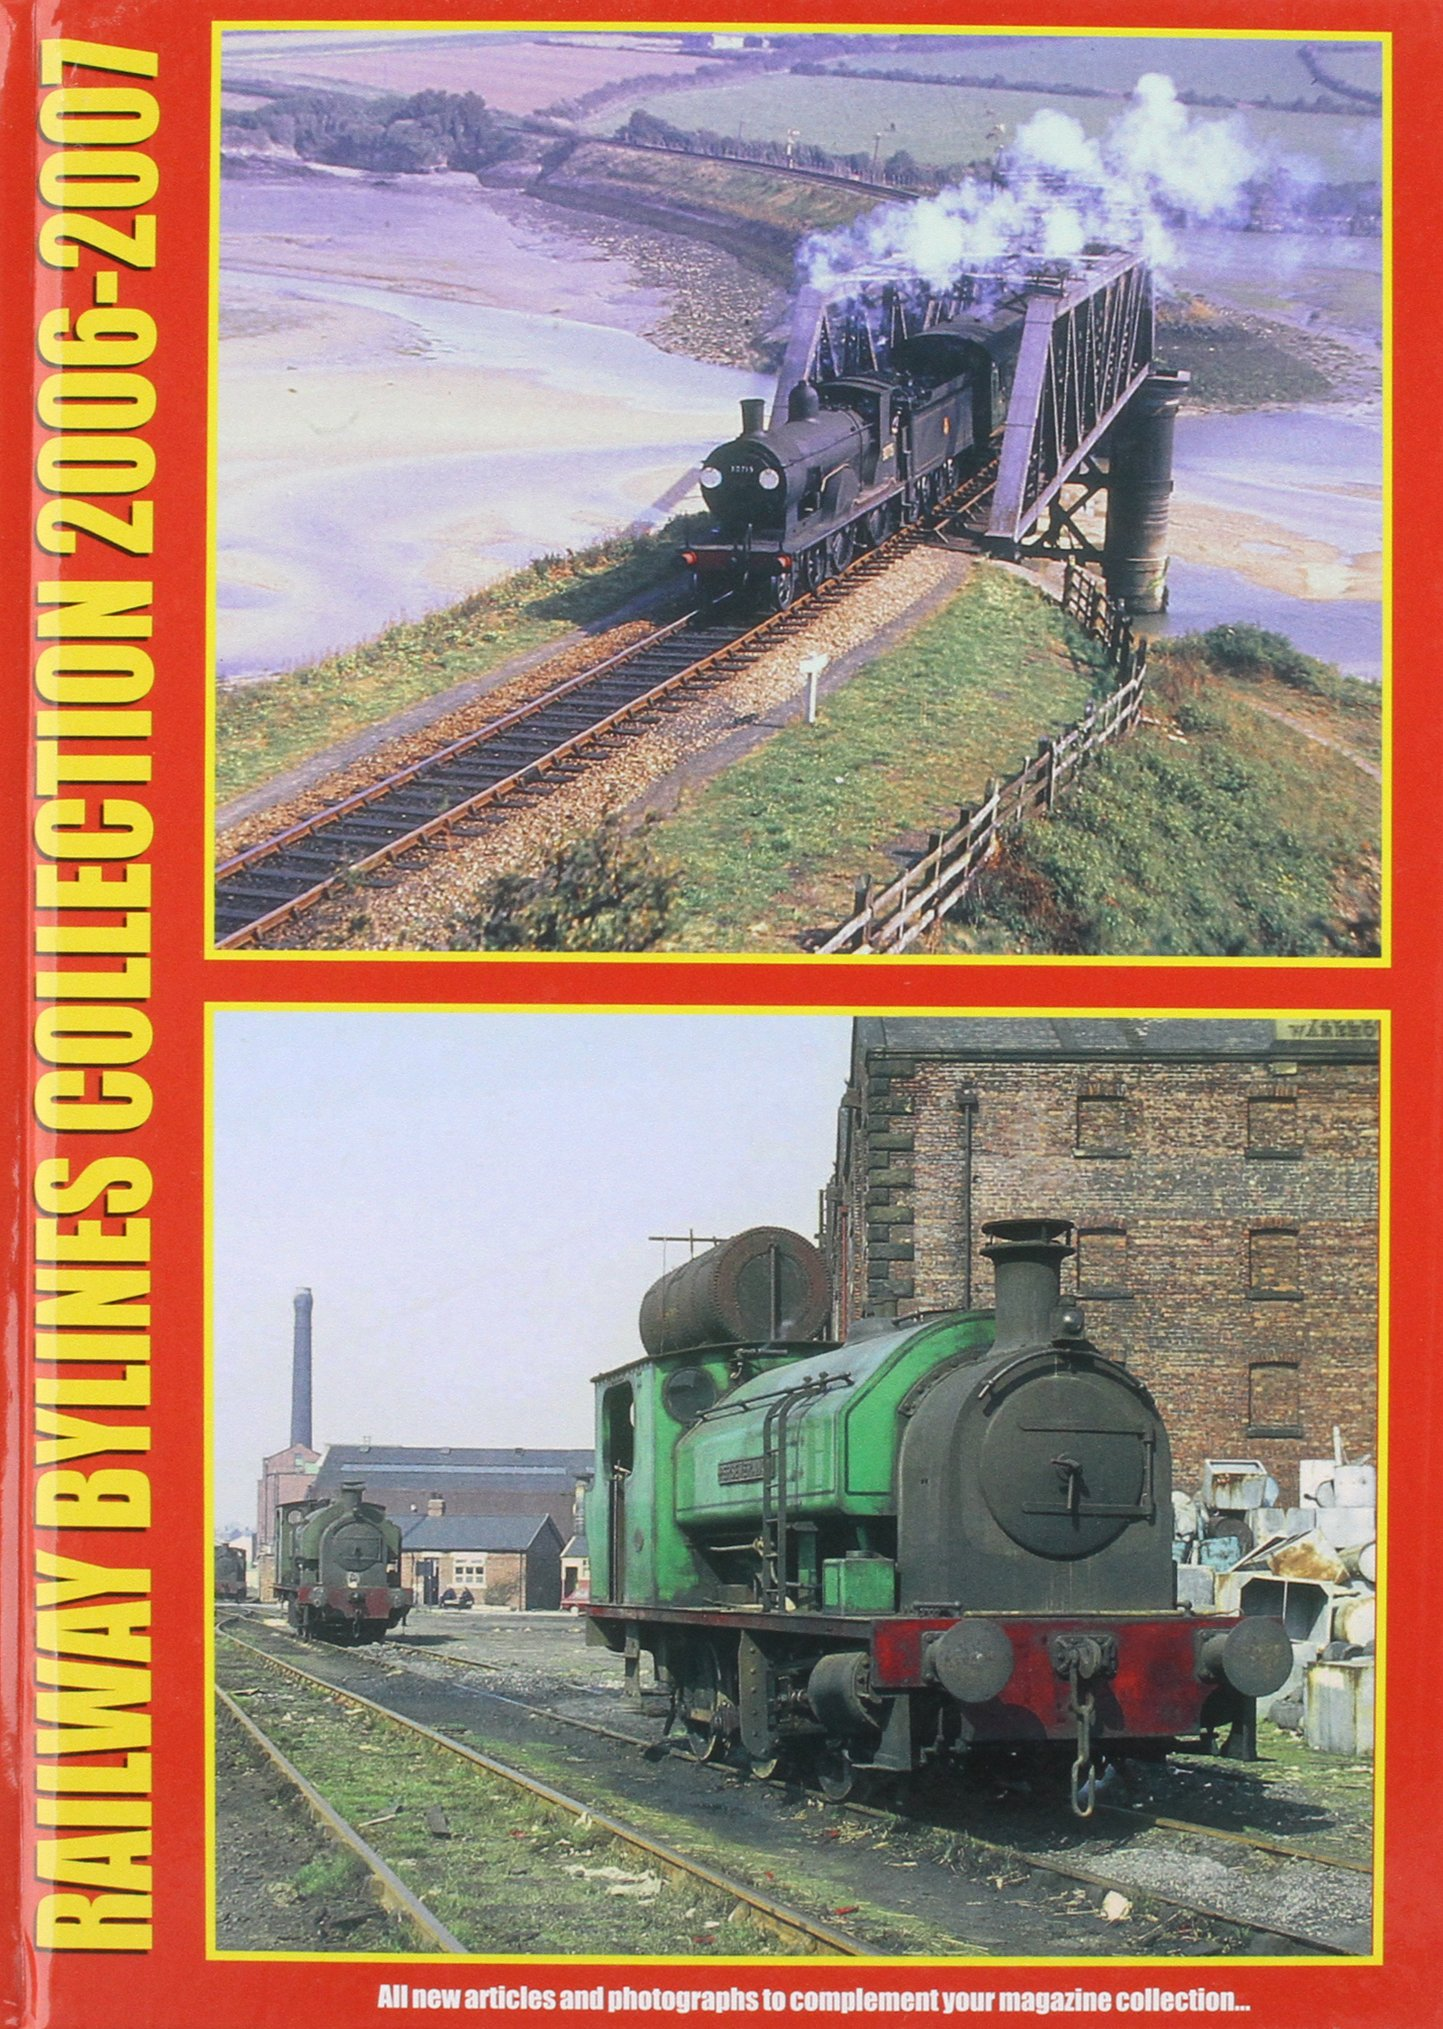 Download Railway Bylines Collection 2006 - 2007 PDF ePub book